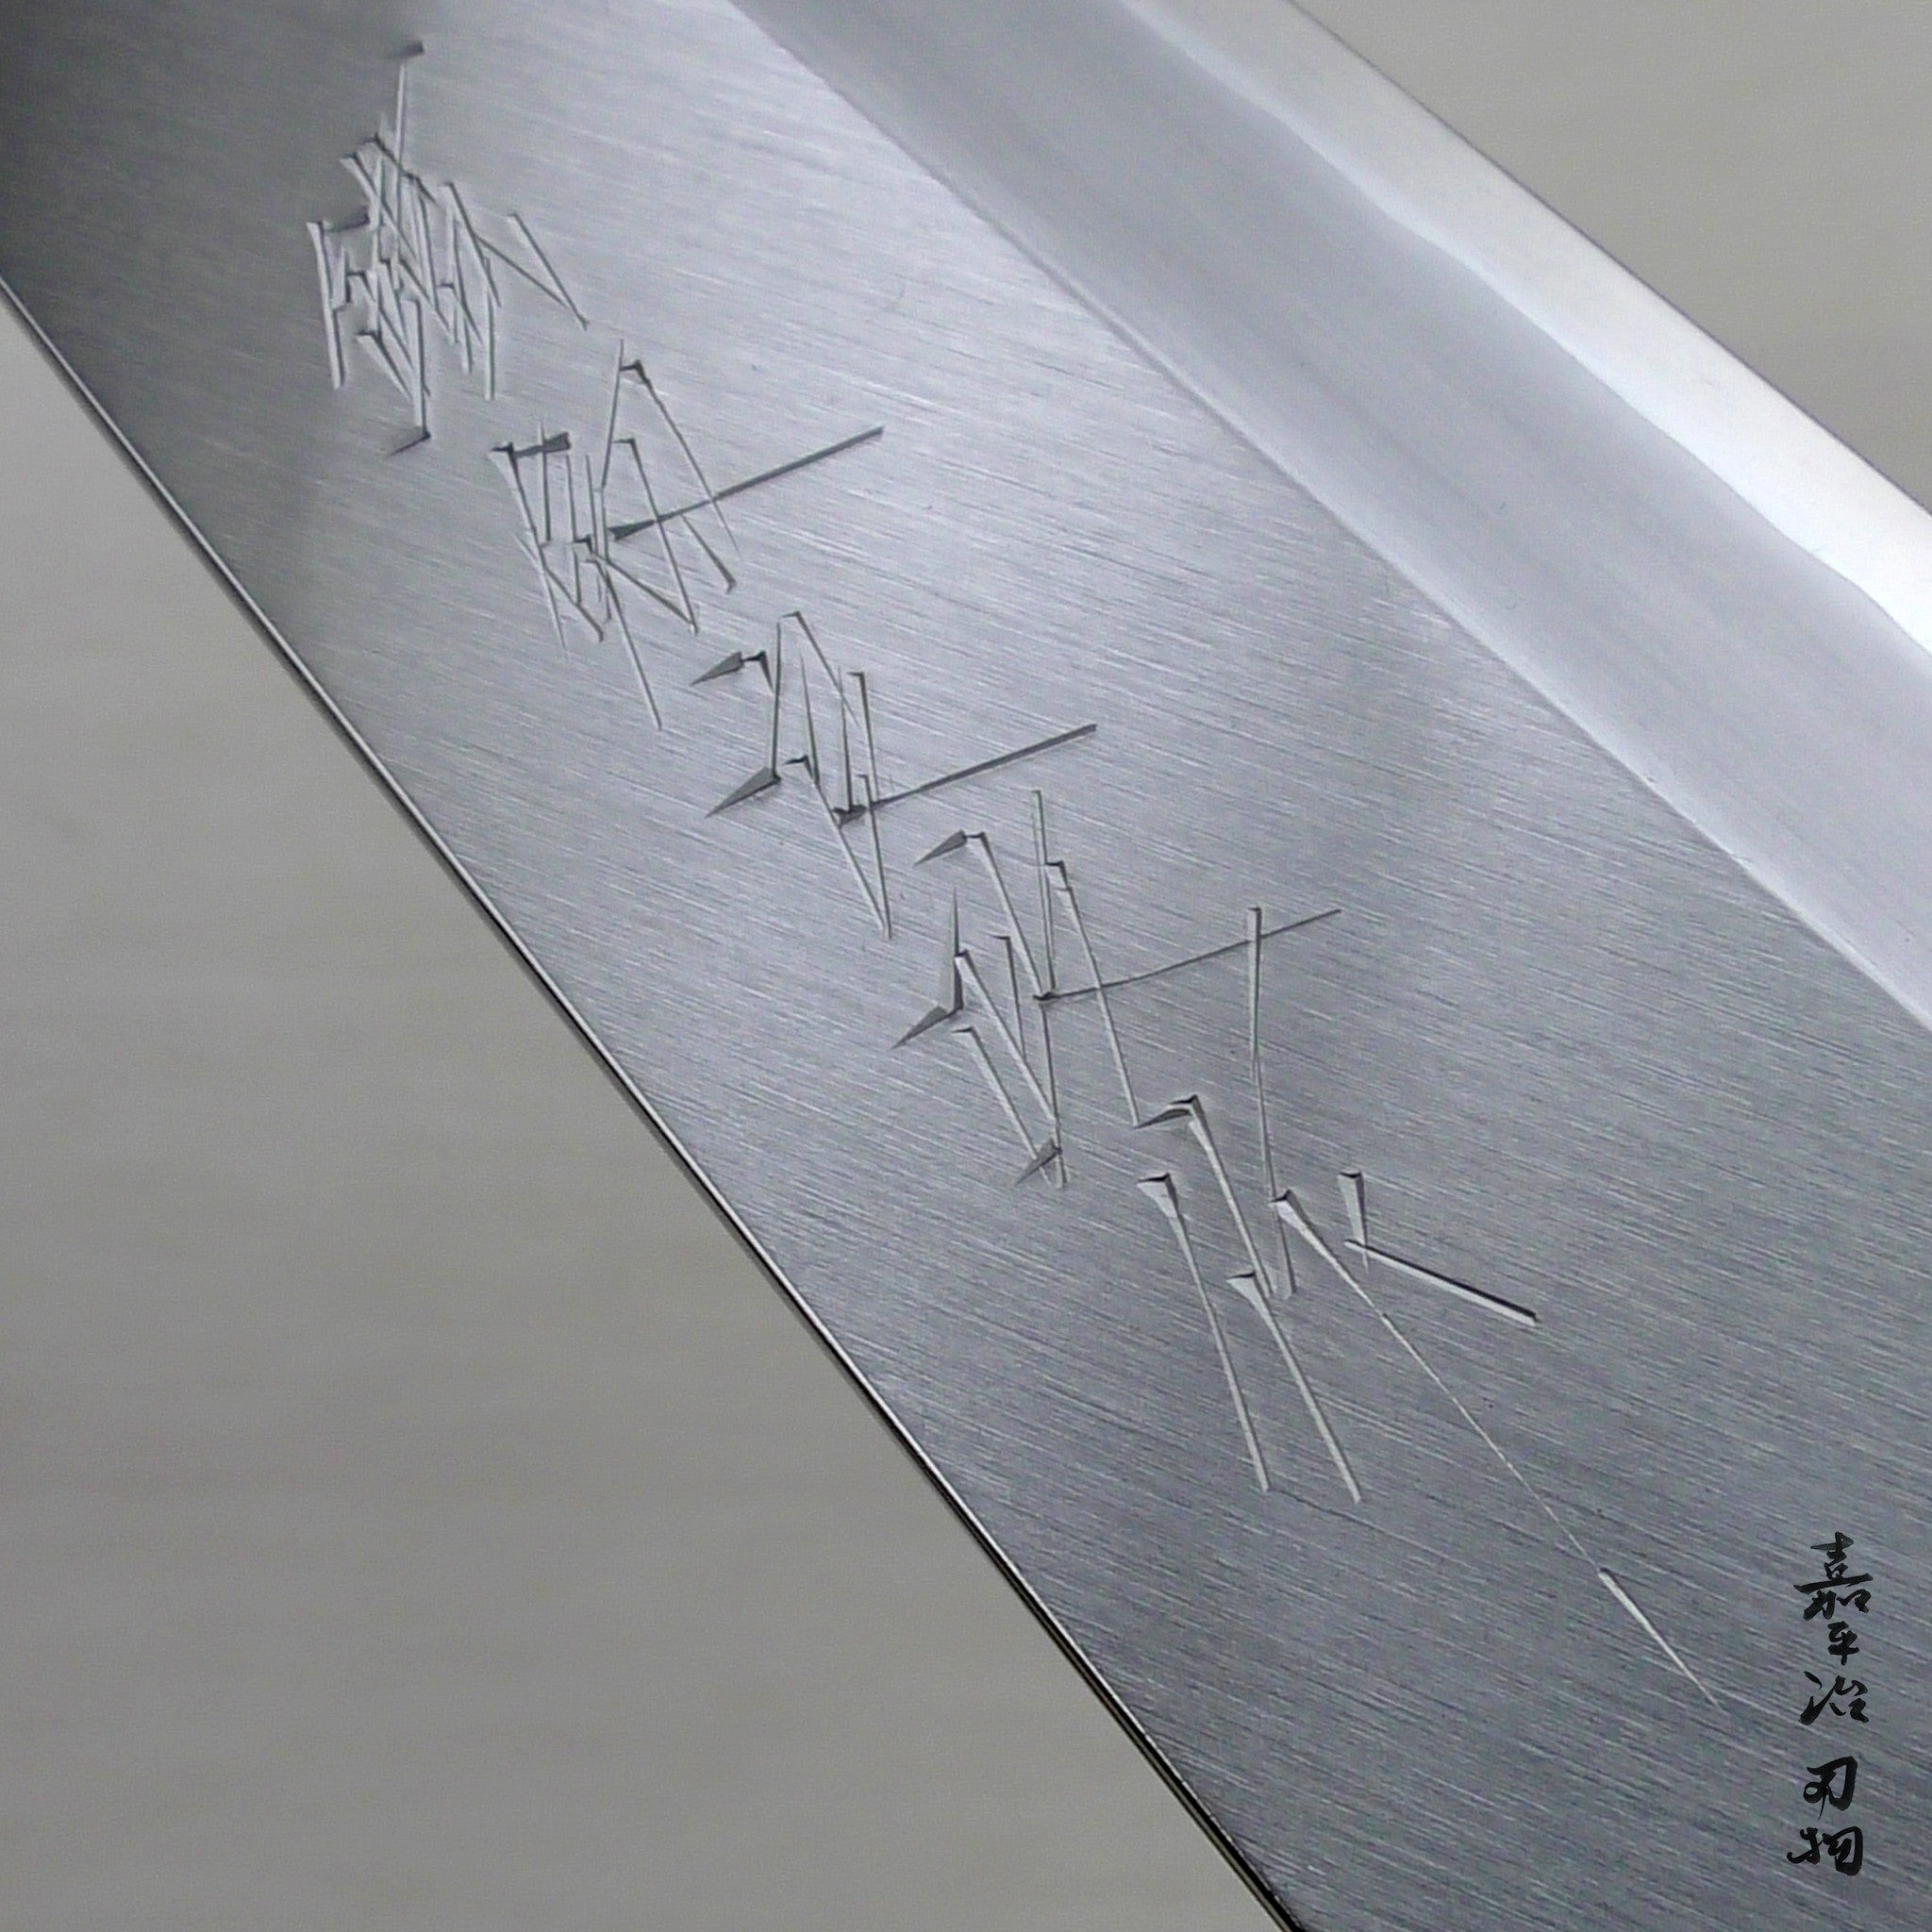 Tekken Yoshimasa ZA18 Damascus 69 Layer Gyuto Japanese Knife